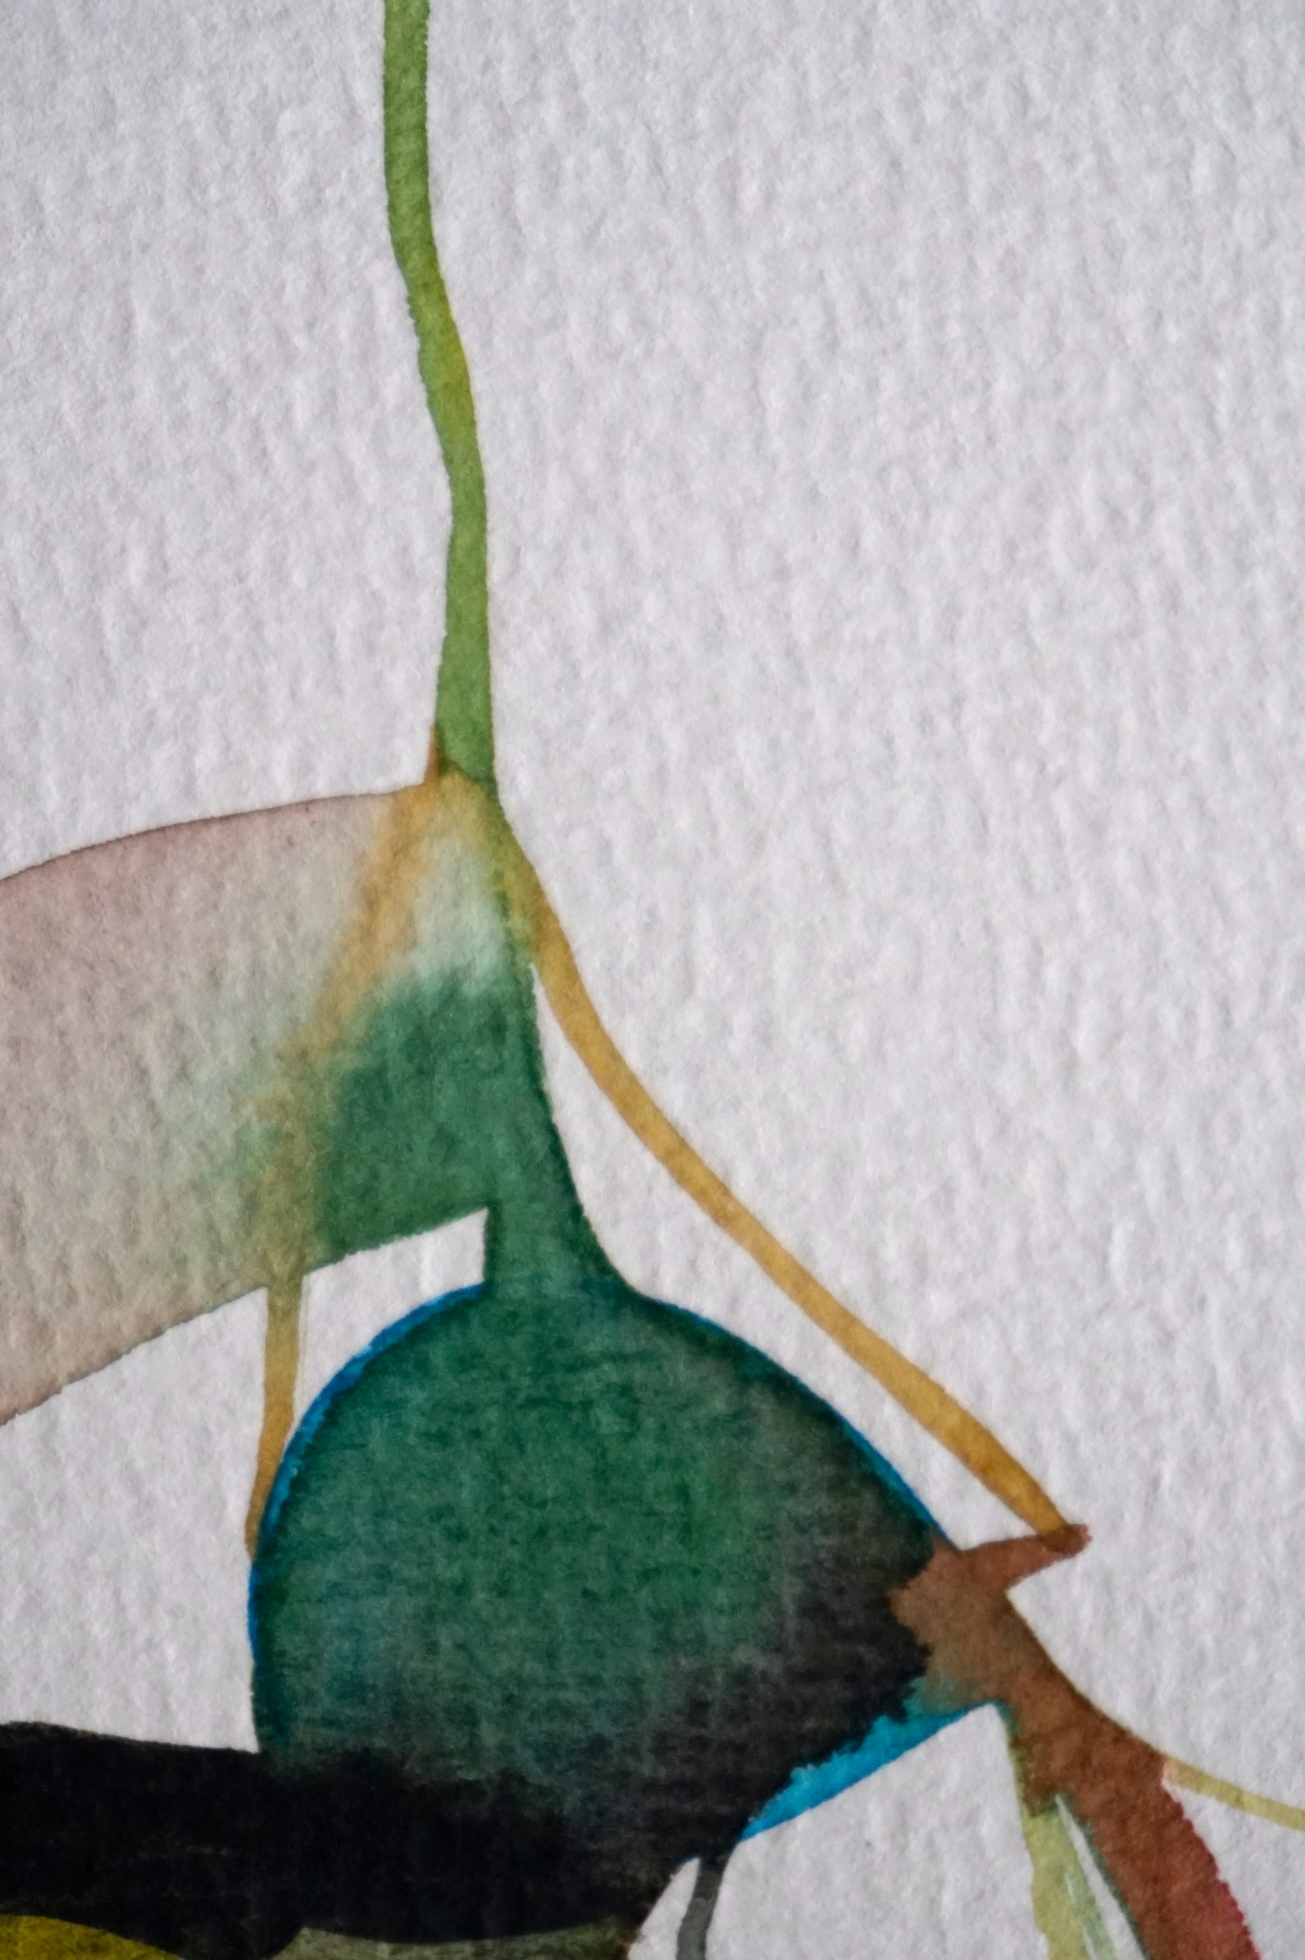 Verde 3, detail, Laura Barbuto, 2013.